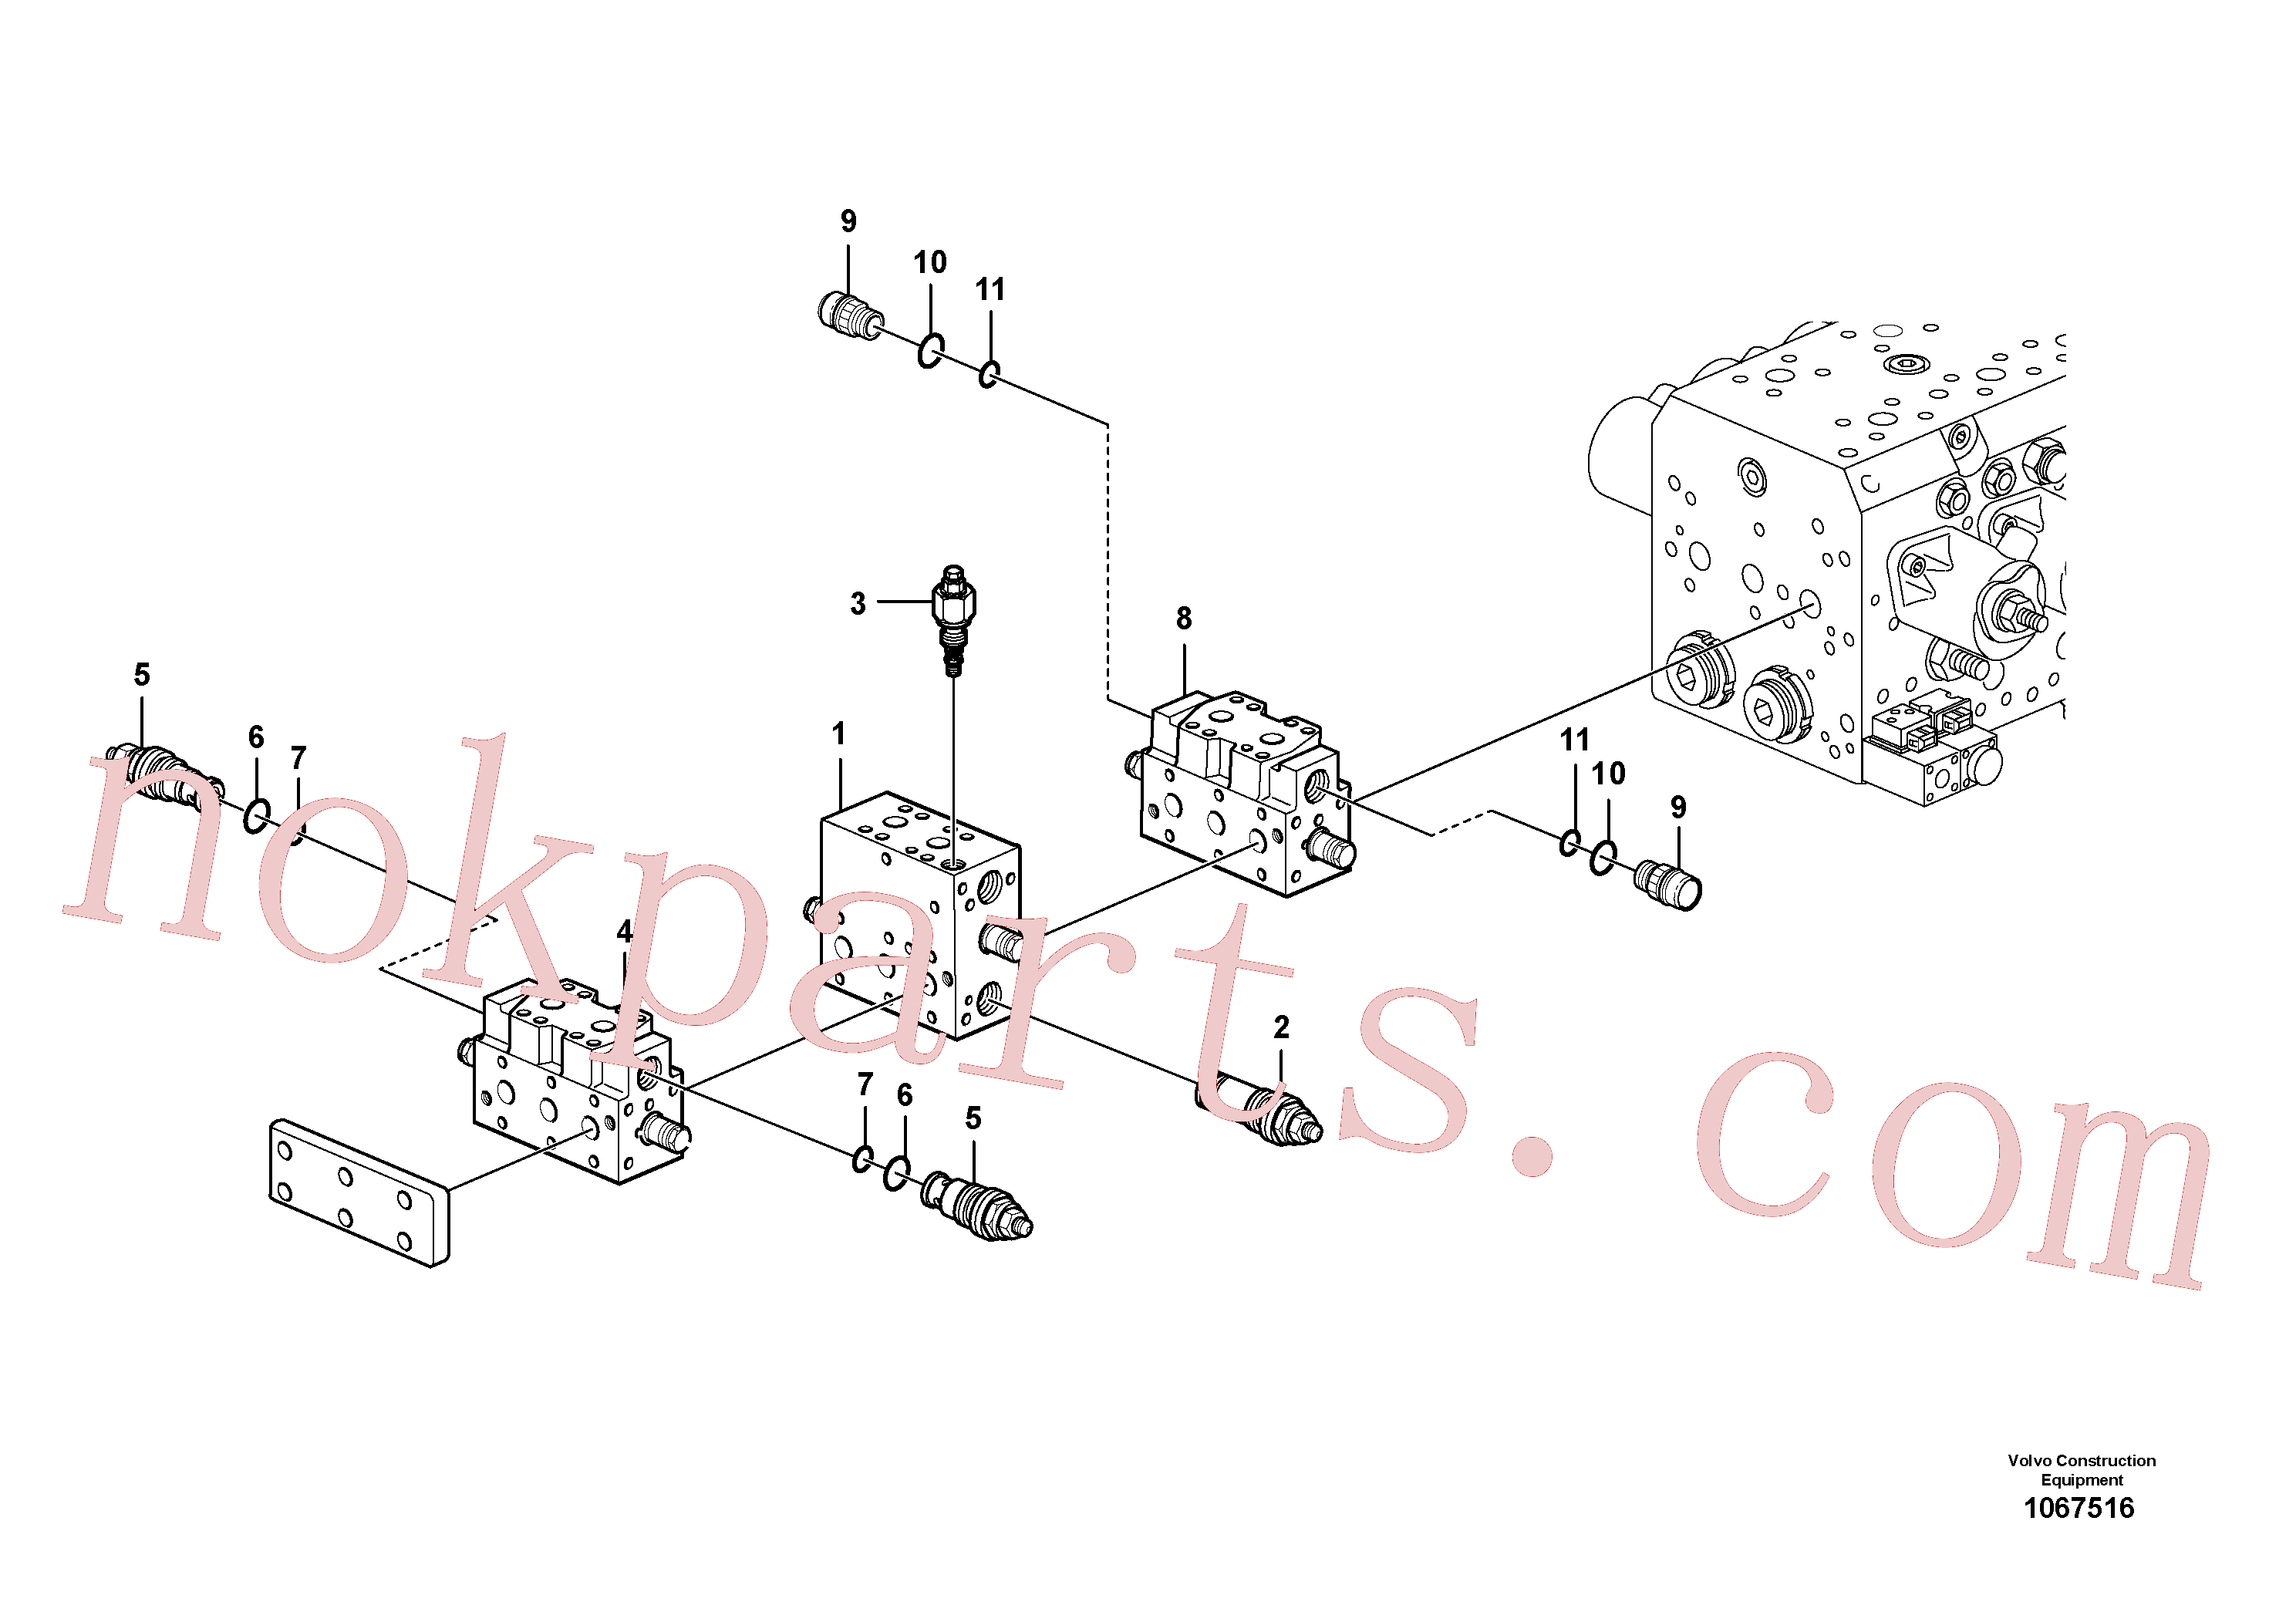 VOE11713222 for Volvo Valve(1067516 assembly)